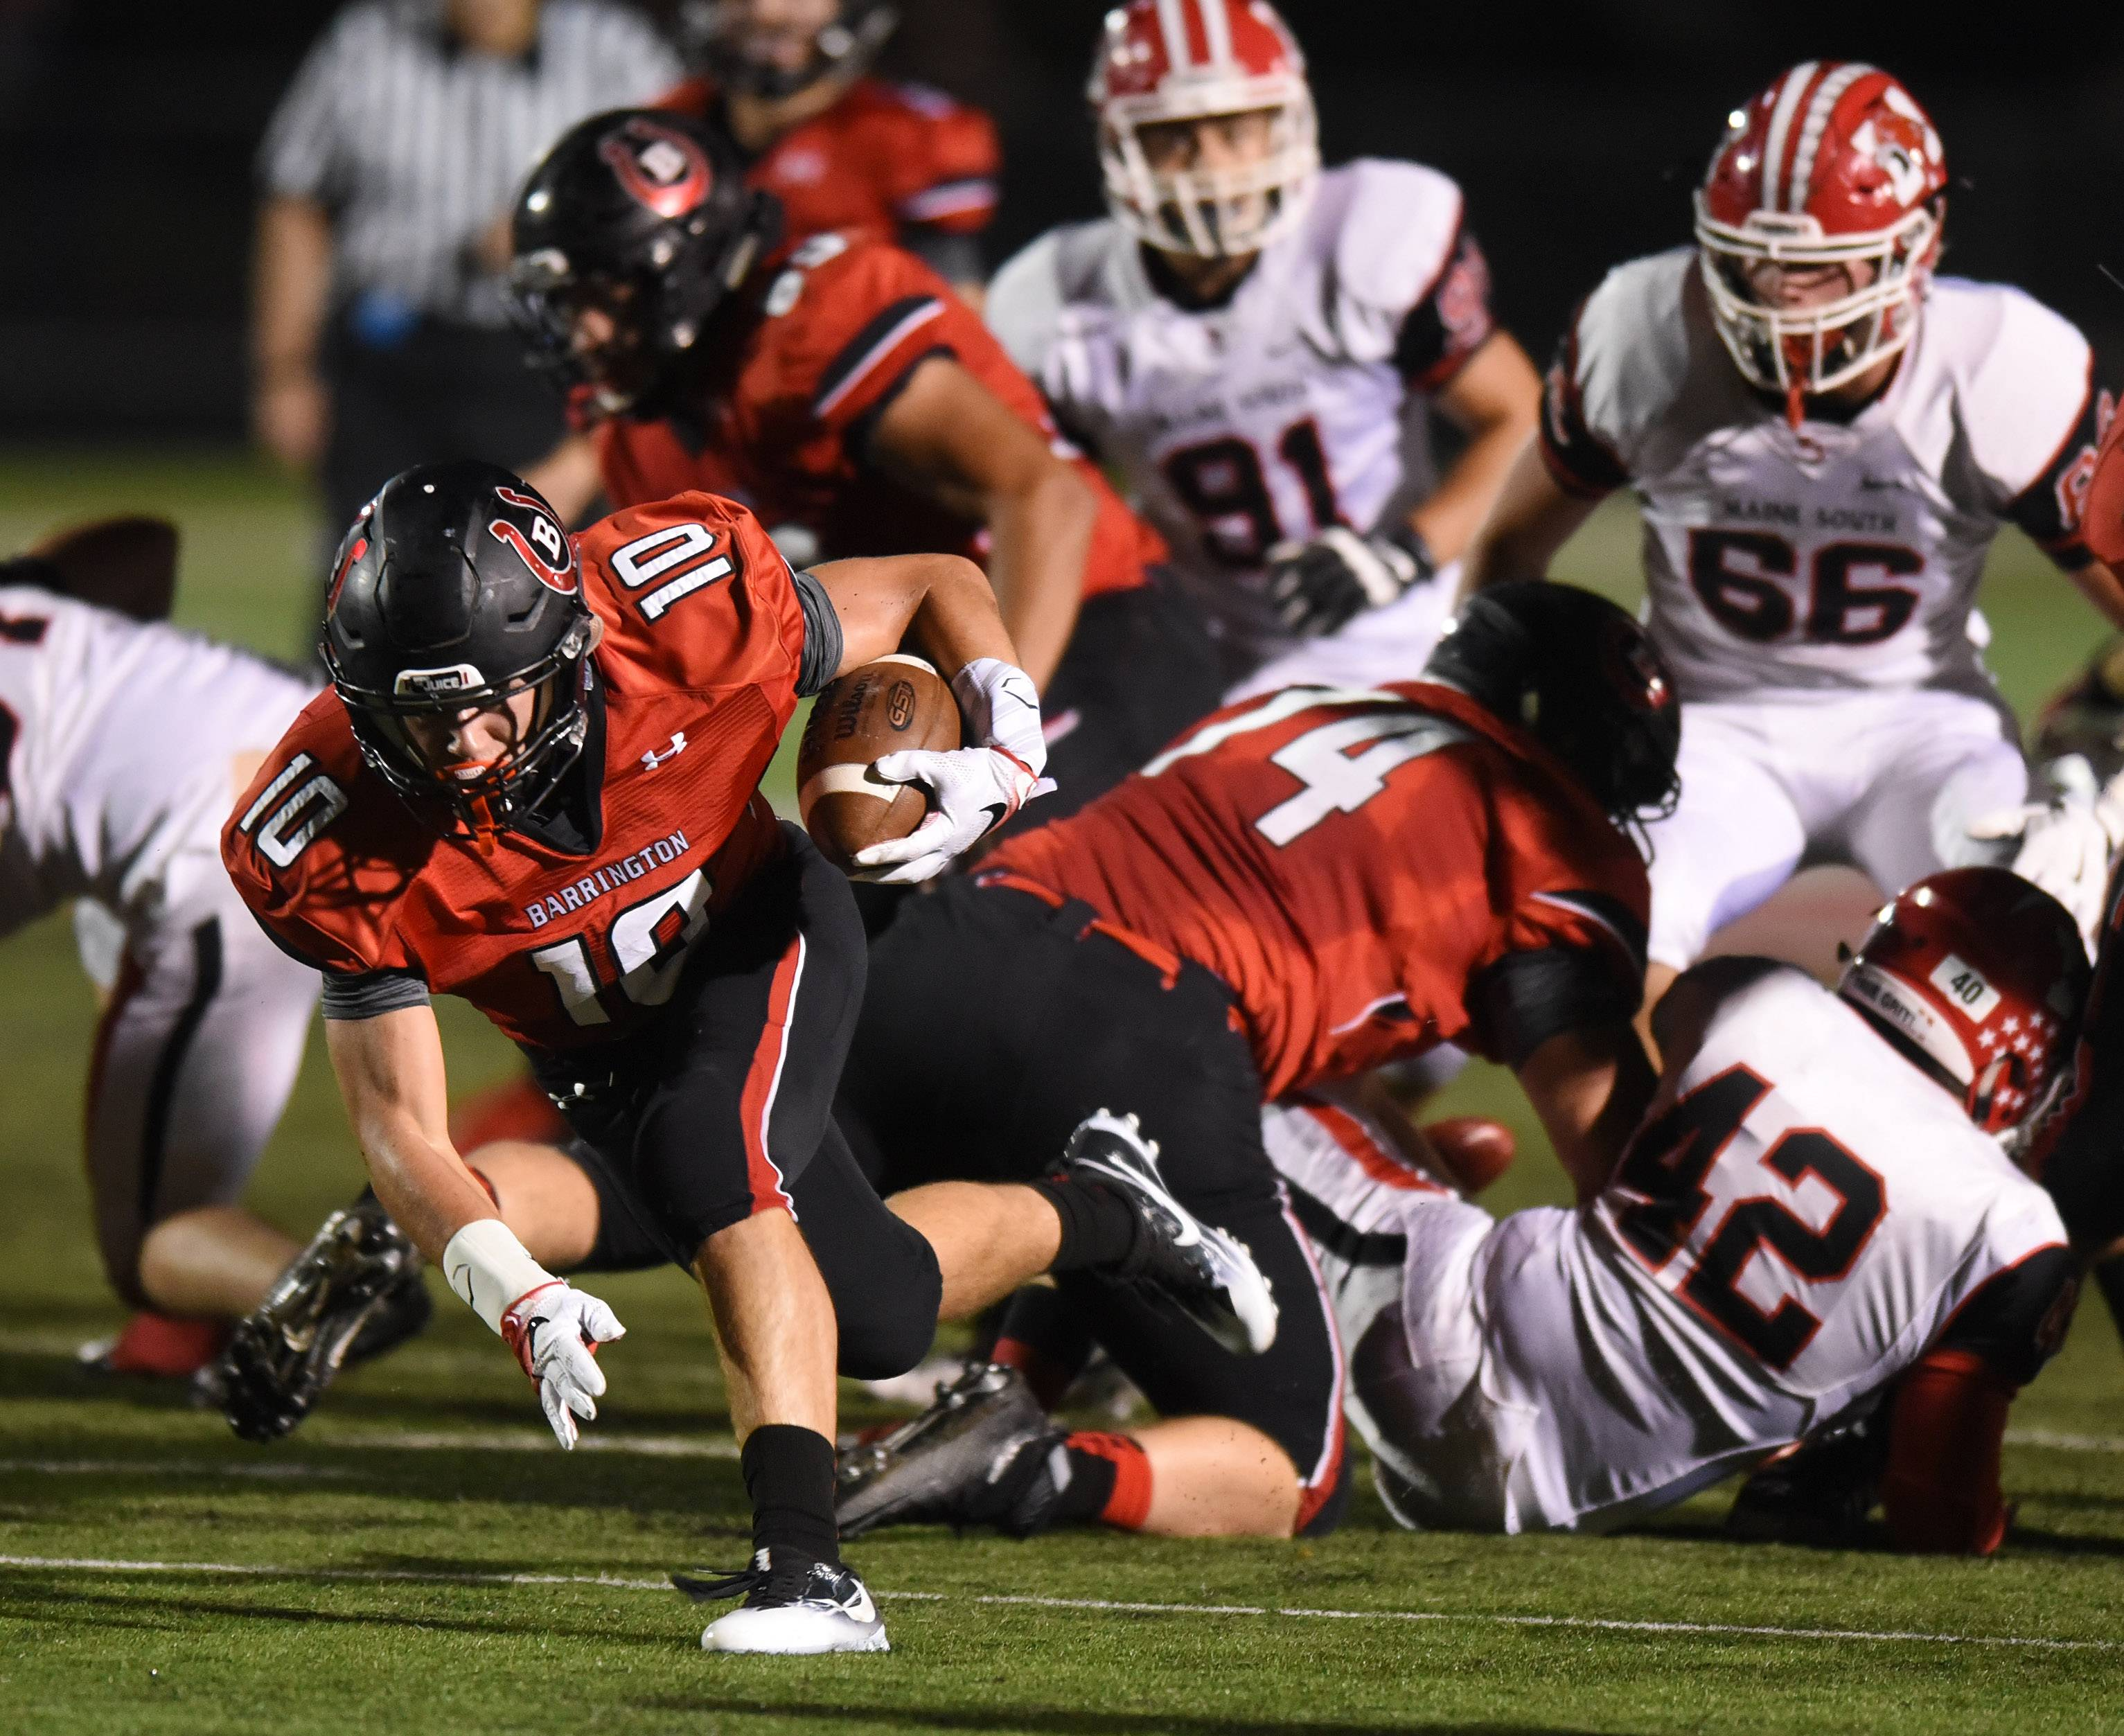 Barrington's Logan Moews stays on his feet after breaking through the Maine South defense during Friday's football game at Barrington.